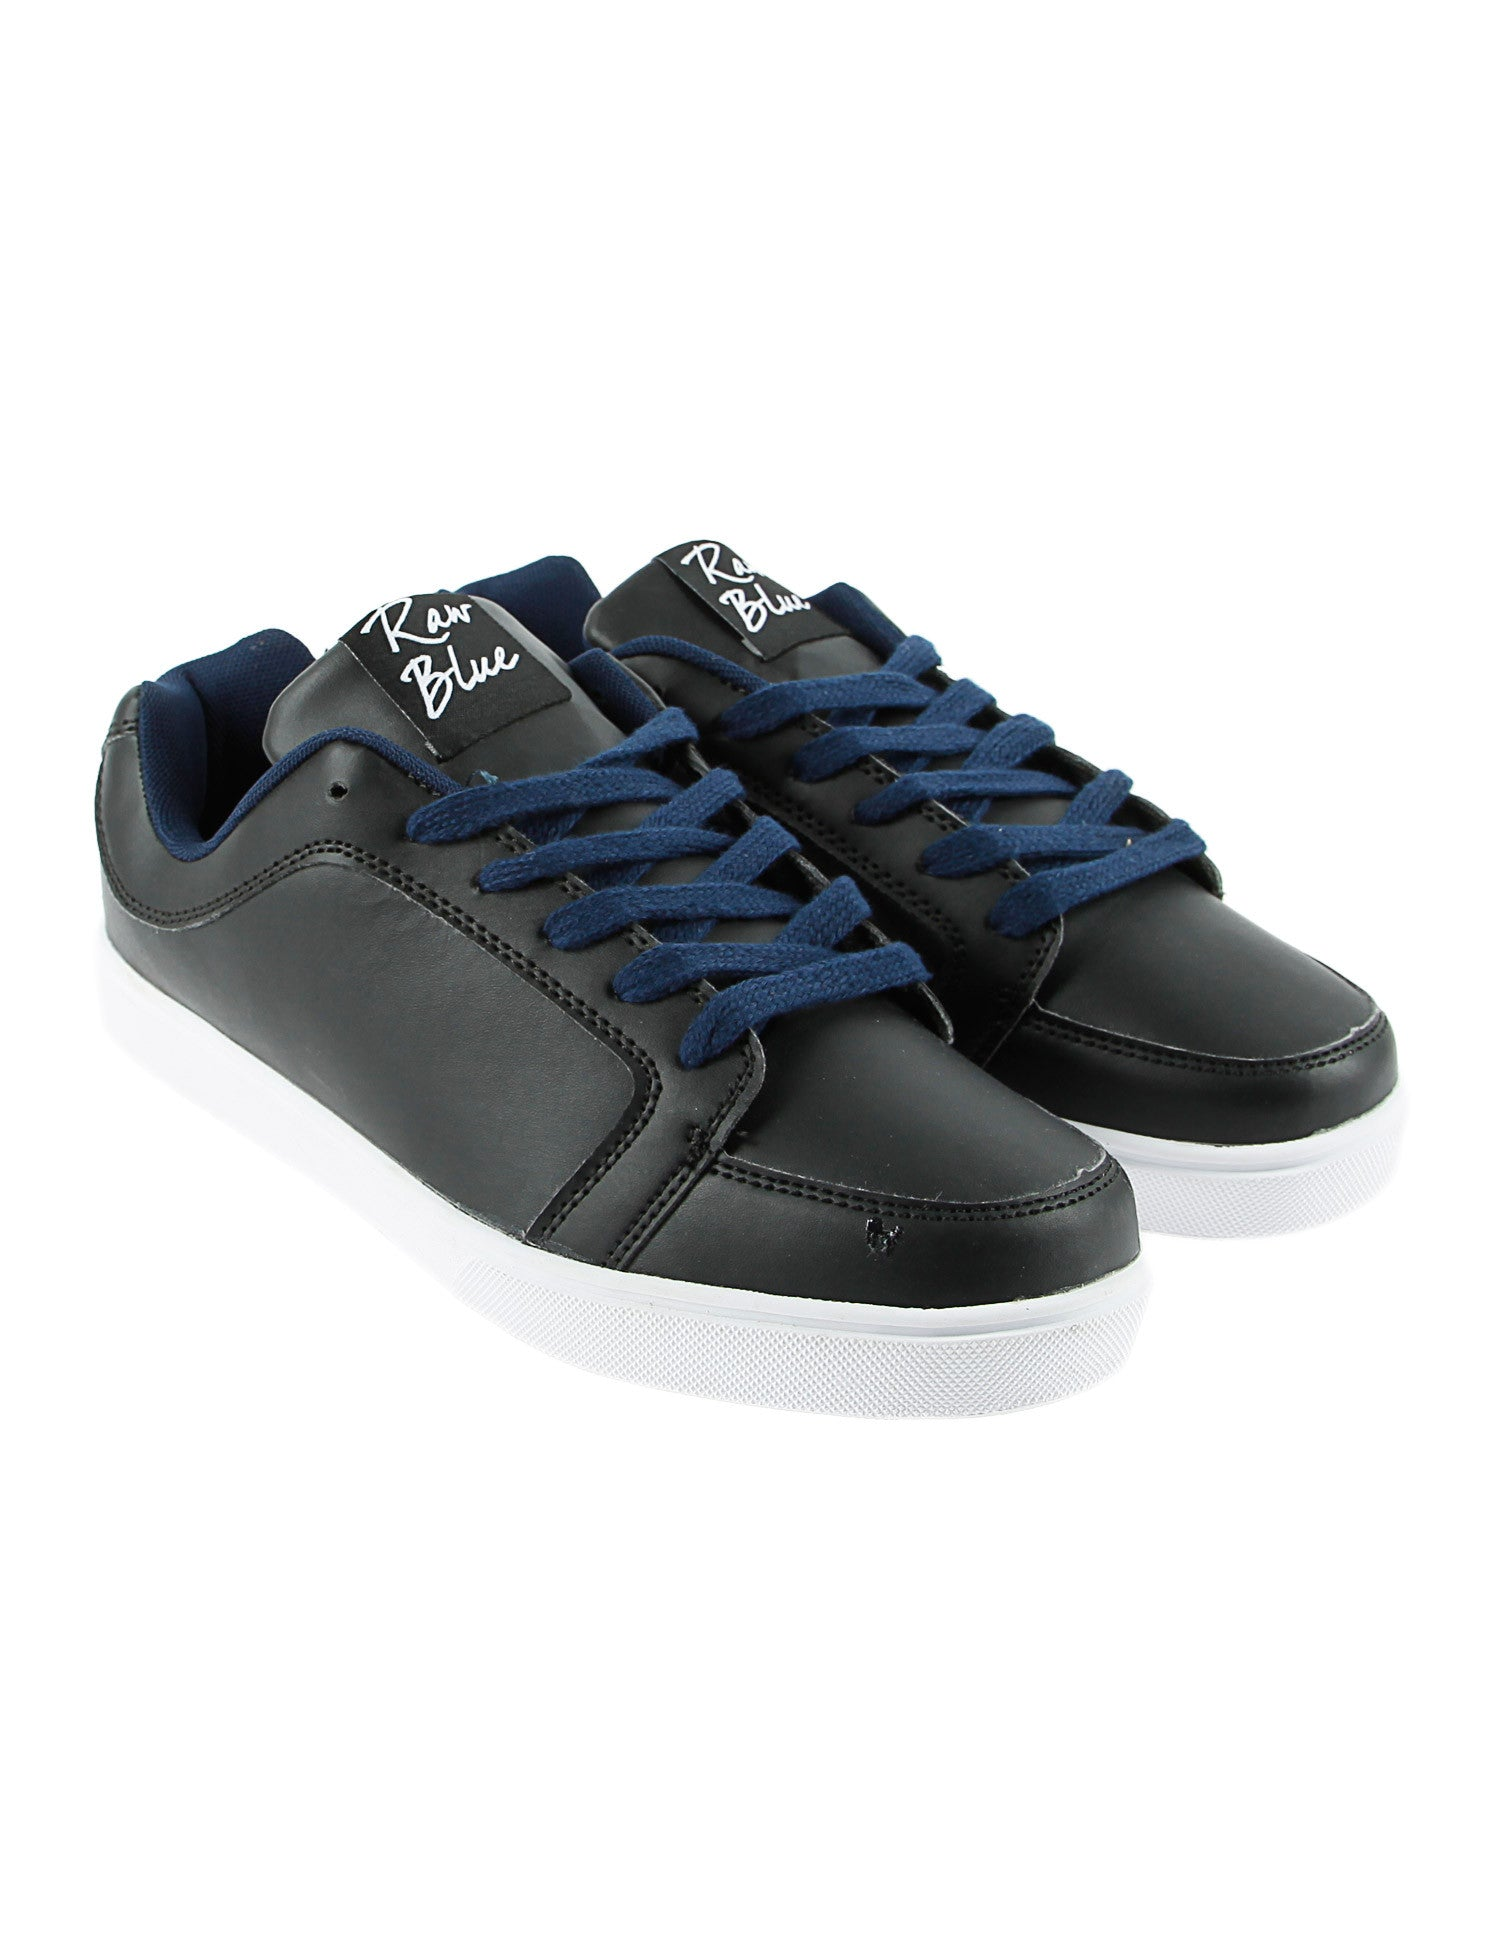 Raw Blue RBS-LOW-155A Shoes Black